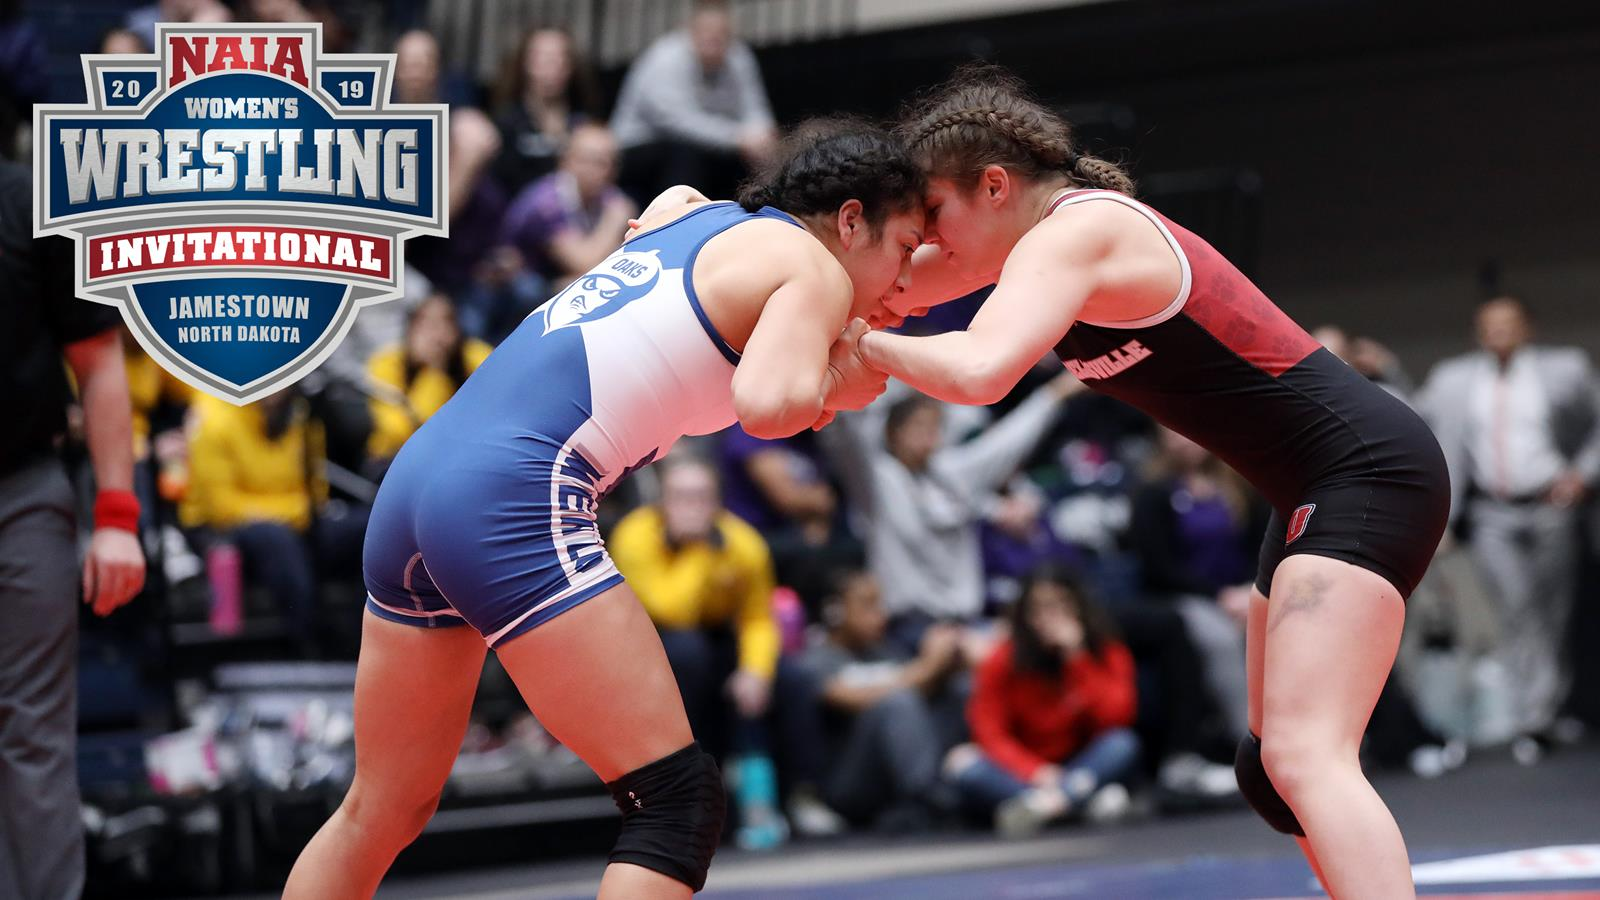 Lady Tiger wrestling has 10 set to compete in inaugural NAIA